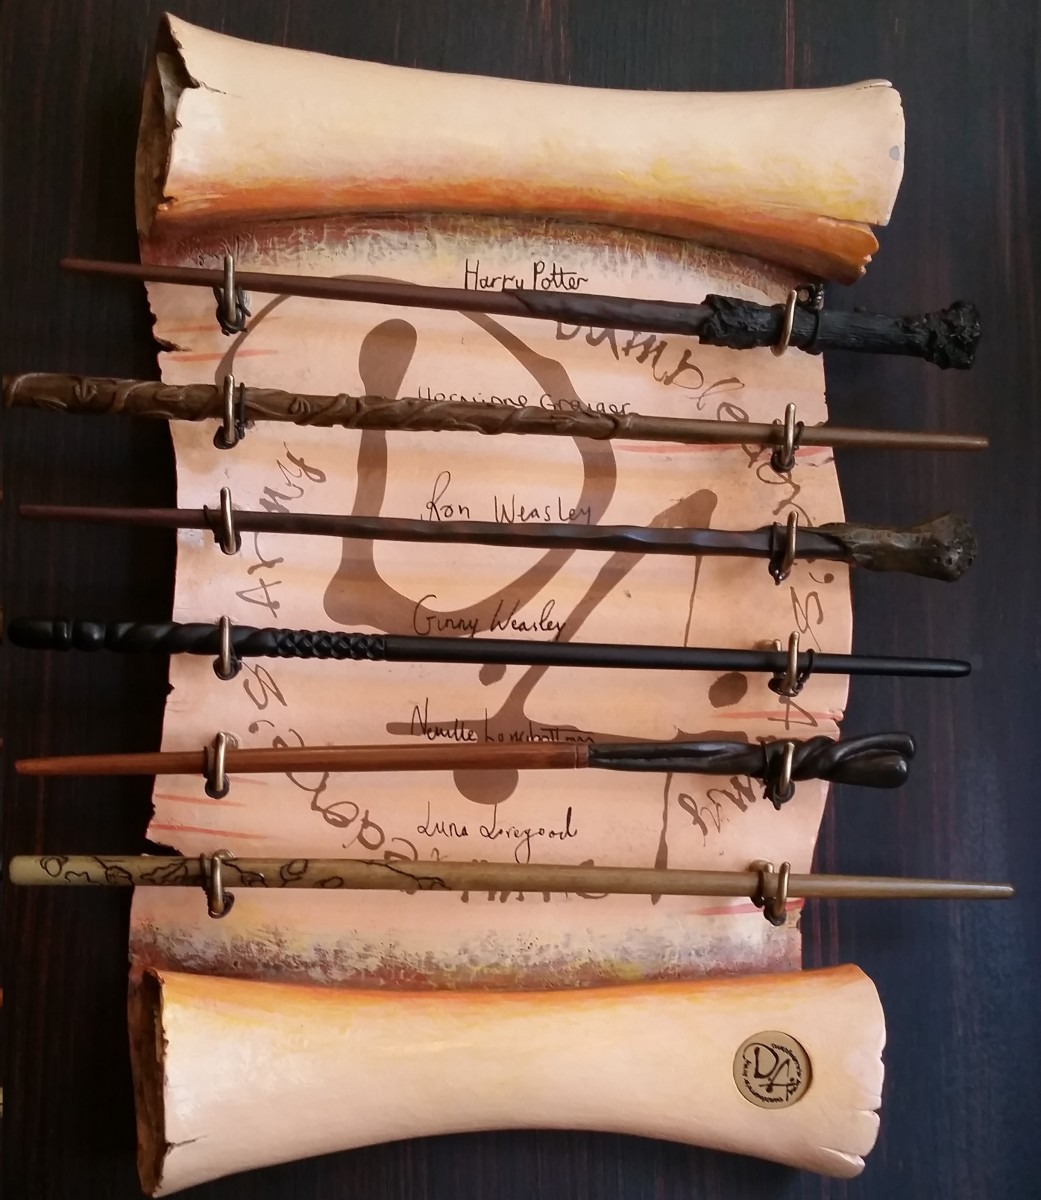 You can get a wand that matches your favorite wizard's!